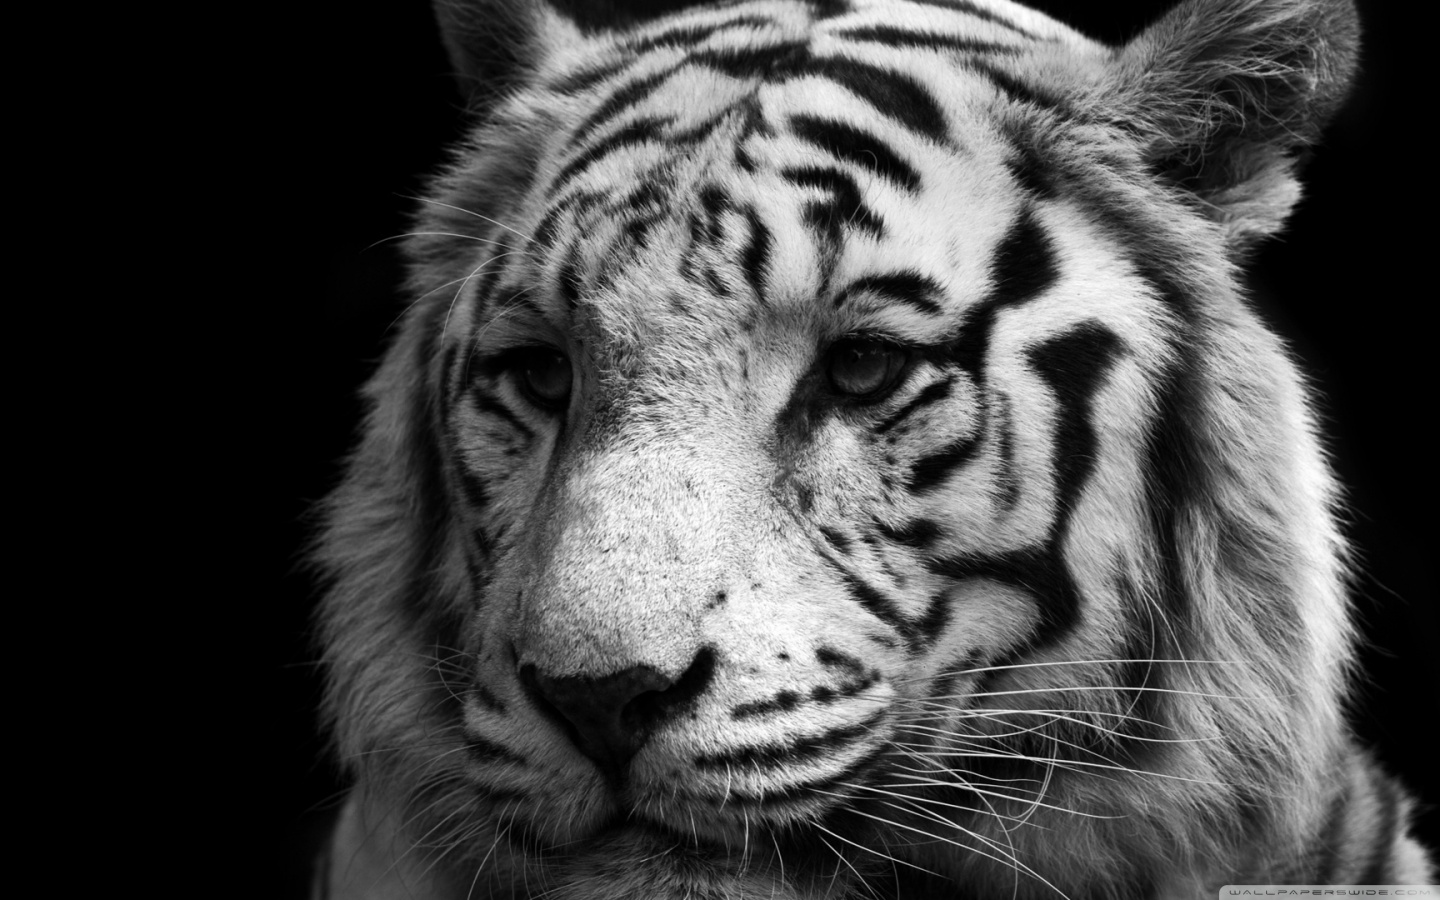 Tiger Black And White HD desktop wallpaper : Widescreen : High